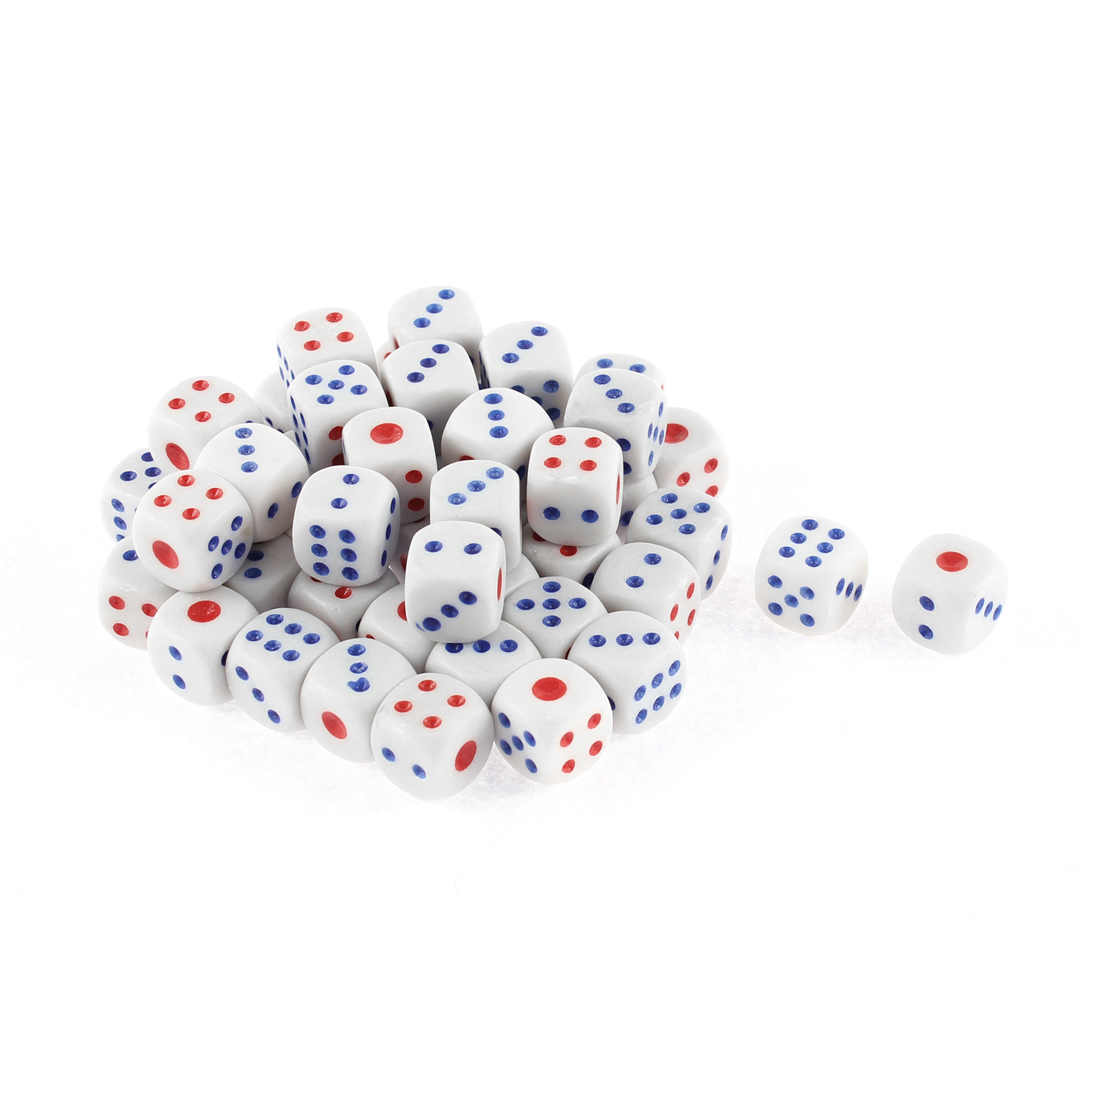 50 Pcs White Blue Red Plastic Shaking Lucky Game Bar Casino Props Dices